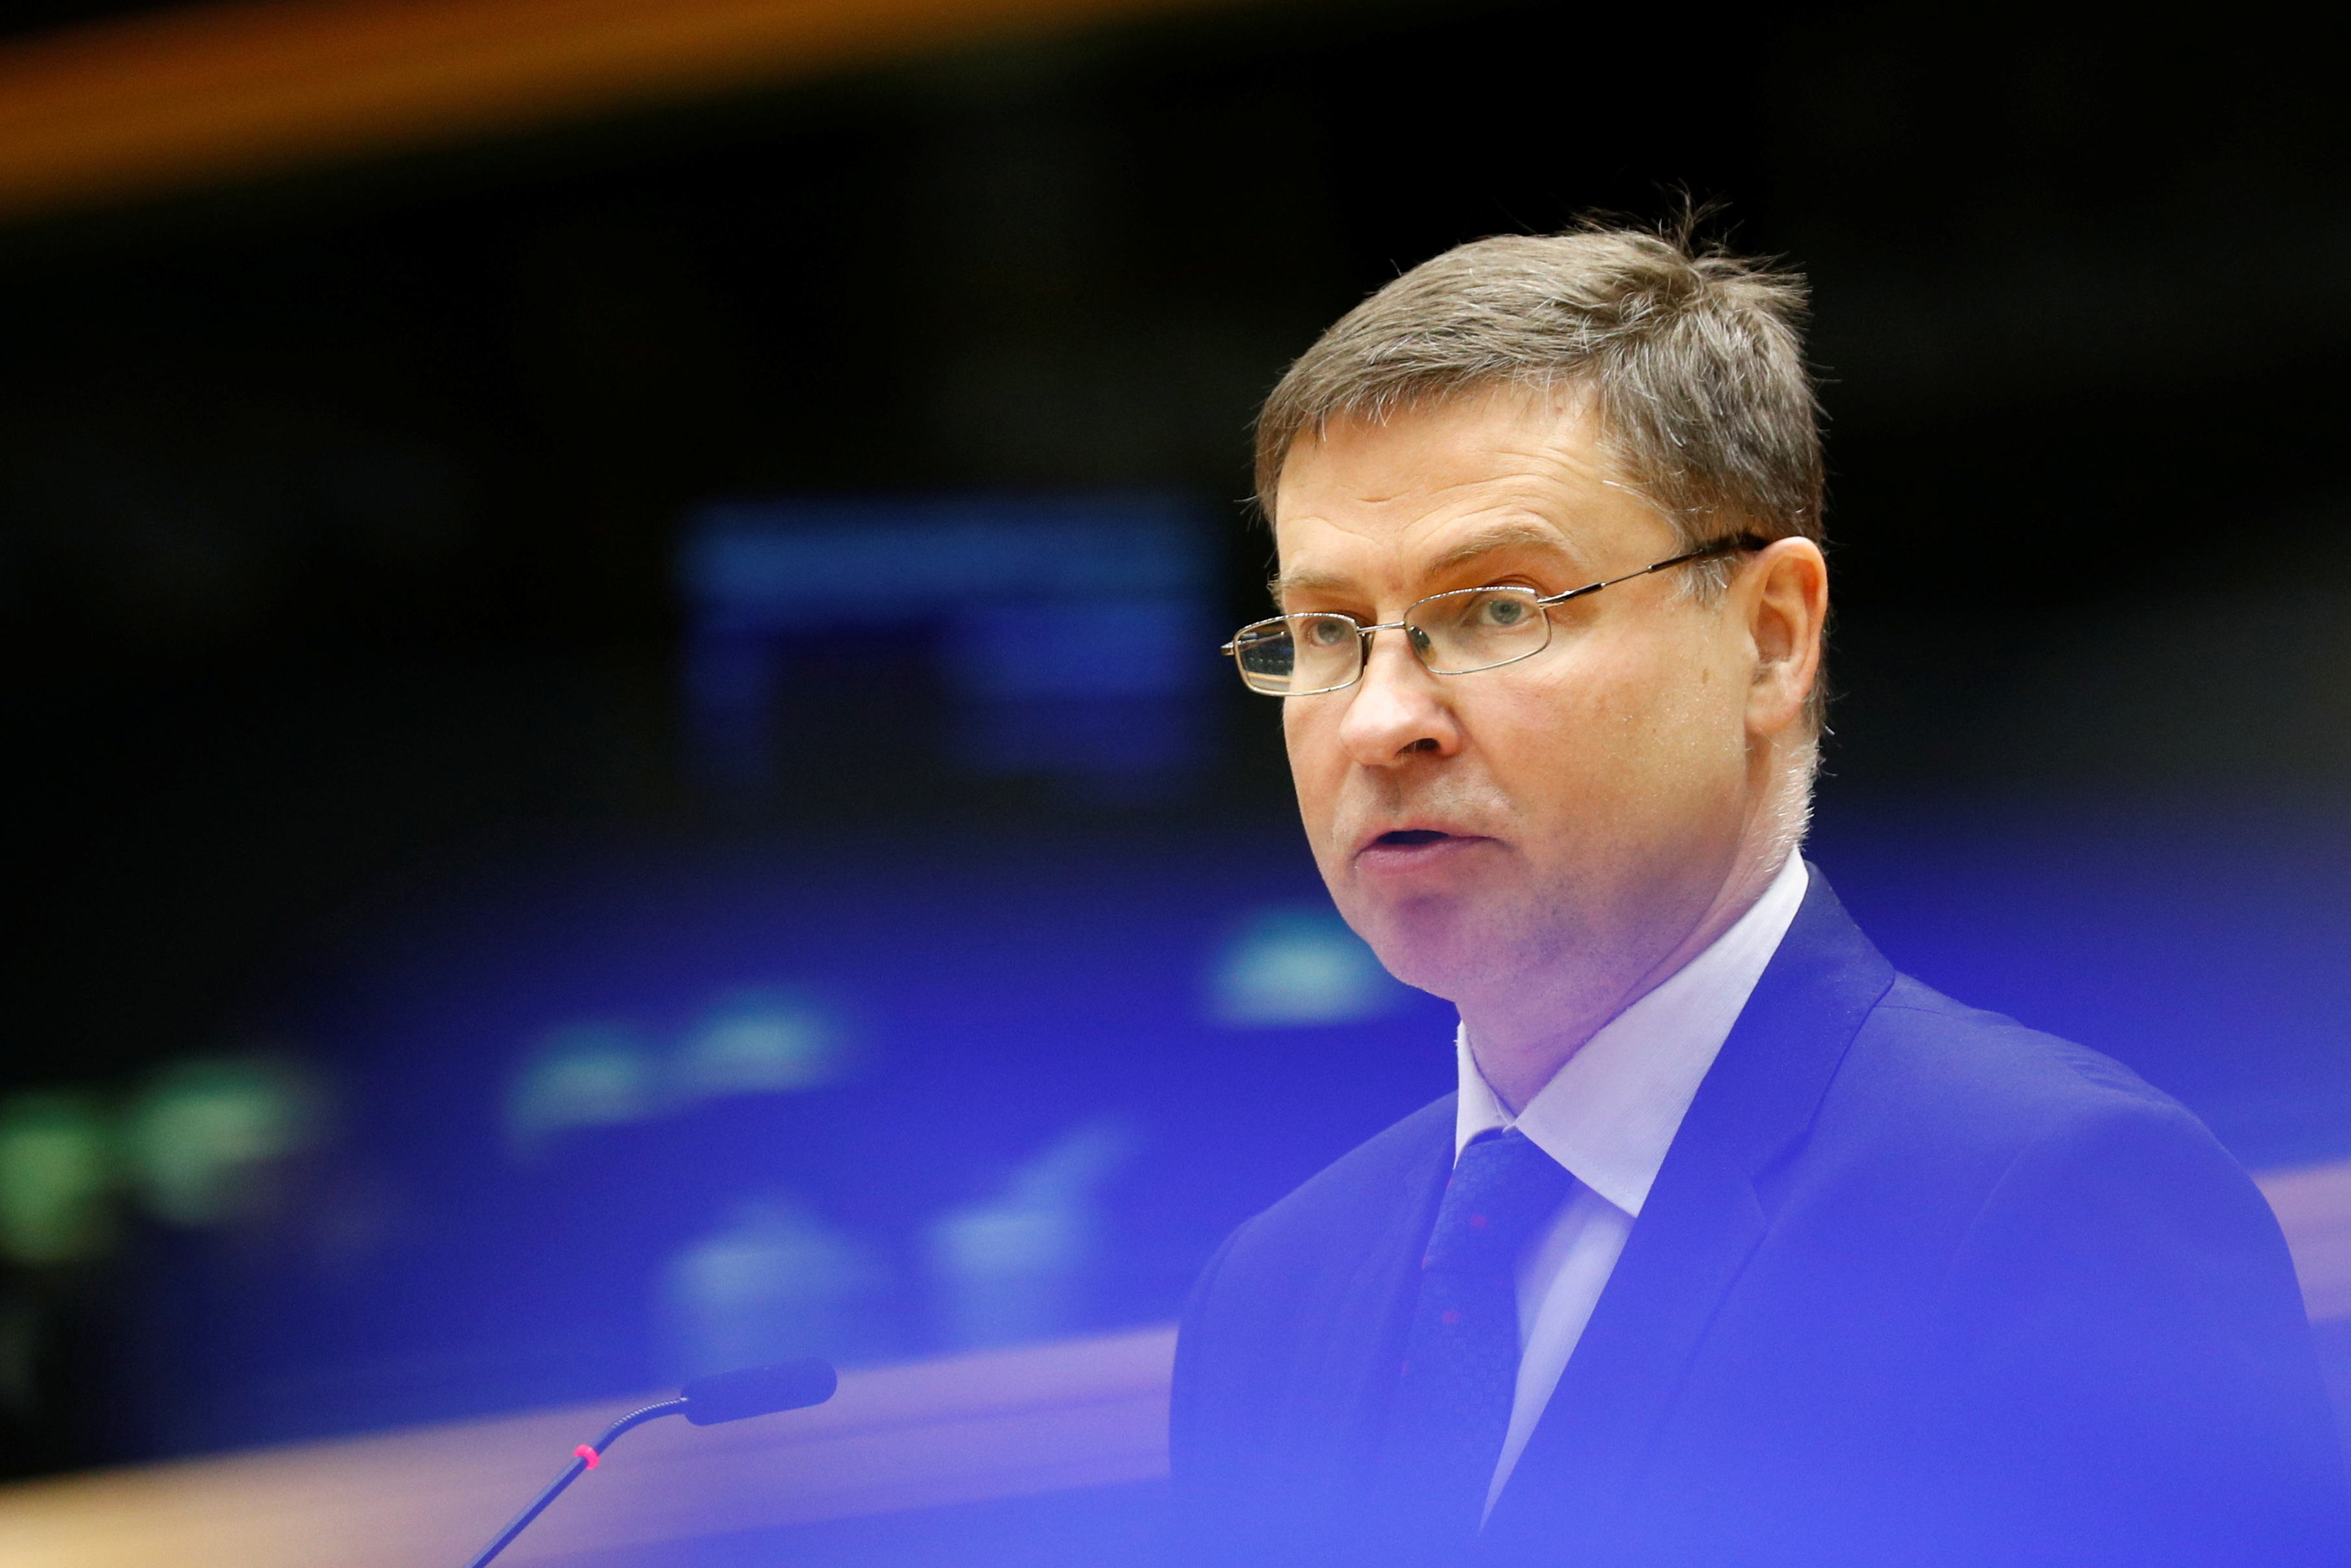 EU Commission Vice President Valdis Dombrovskis addresses the European Parliament in Brussels, Belgium, May 19, 2021. REUTERS/Johanna Geron/Pool